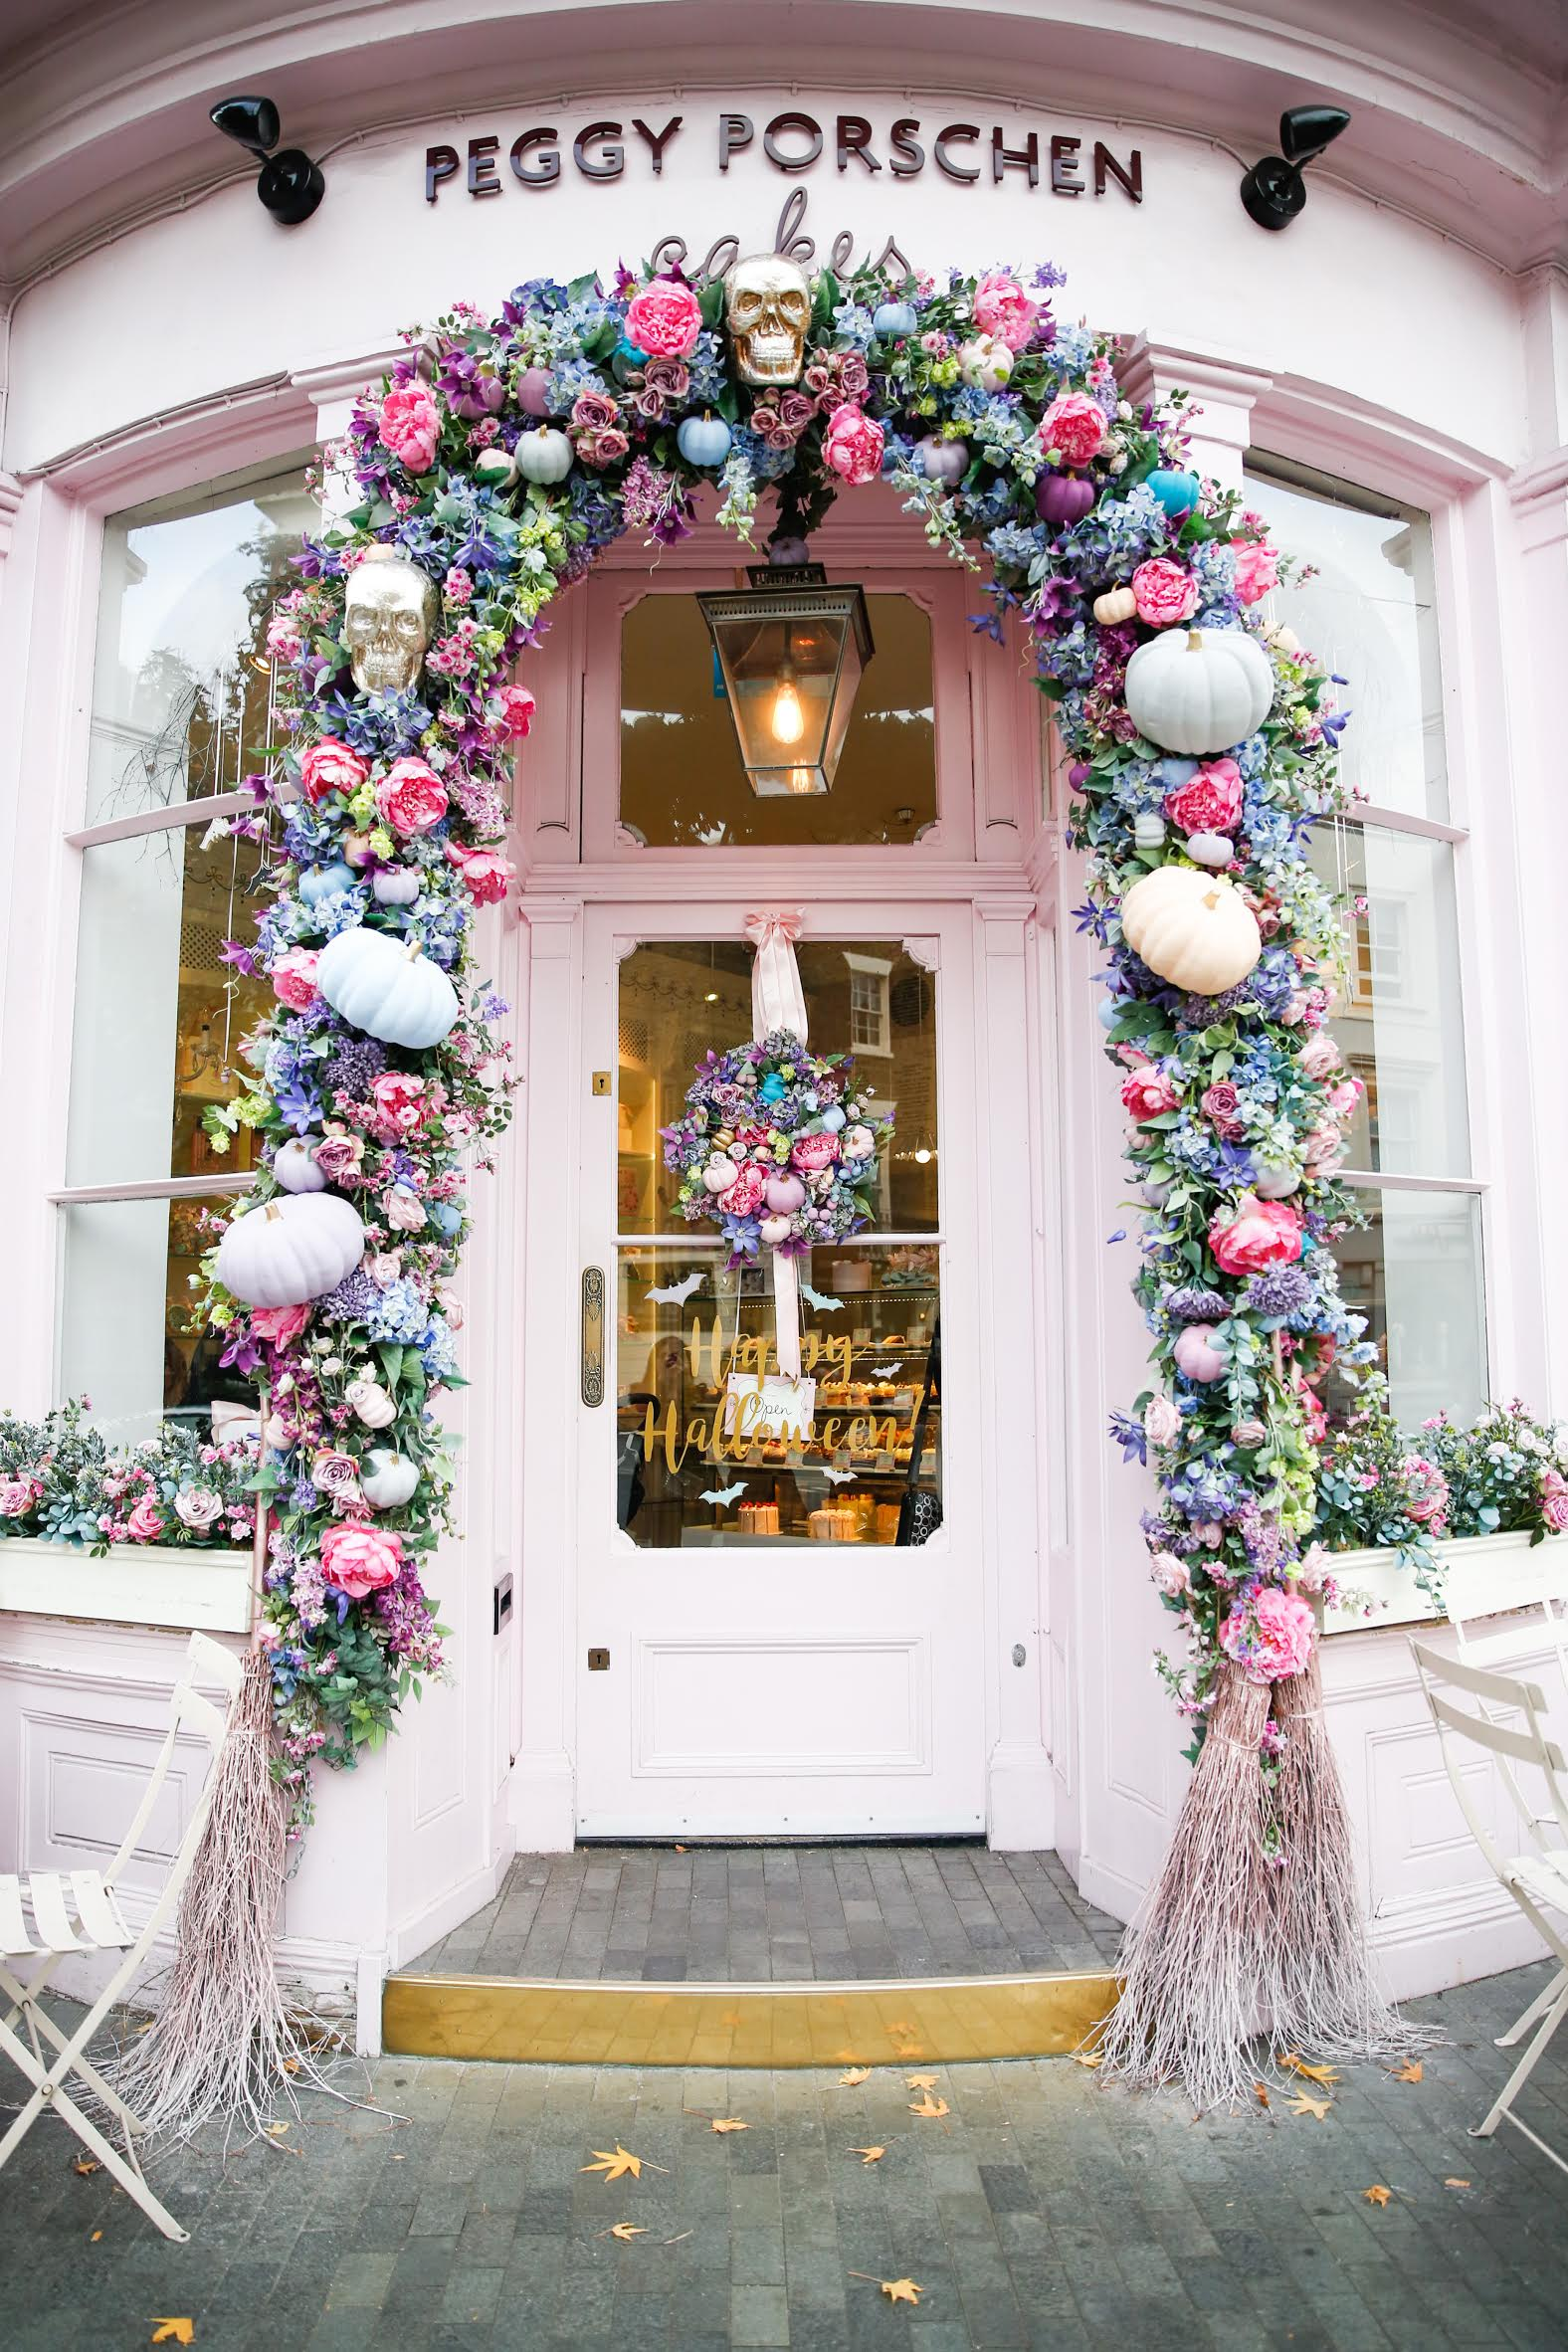 london restaurants, peggy porschen cakes, peggy porschen, best restaurants in london, london eats, alyson haley london, alyson haley, sequins and things